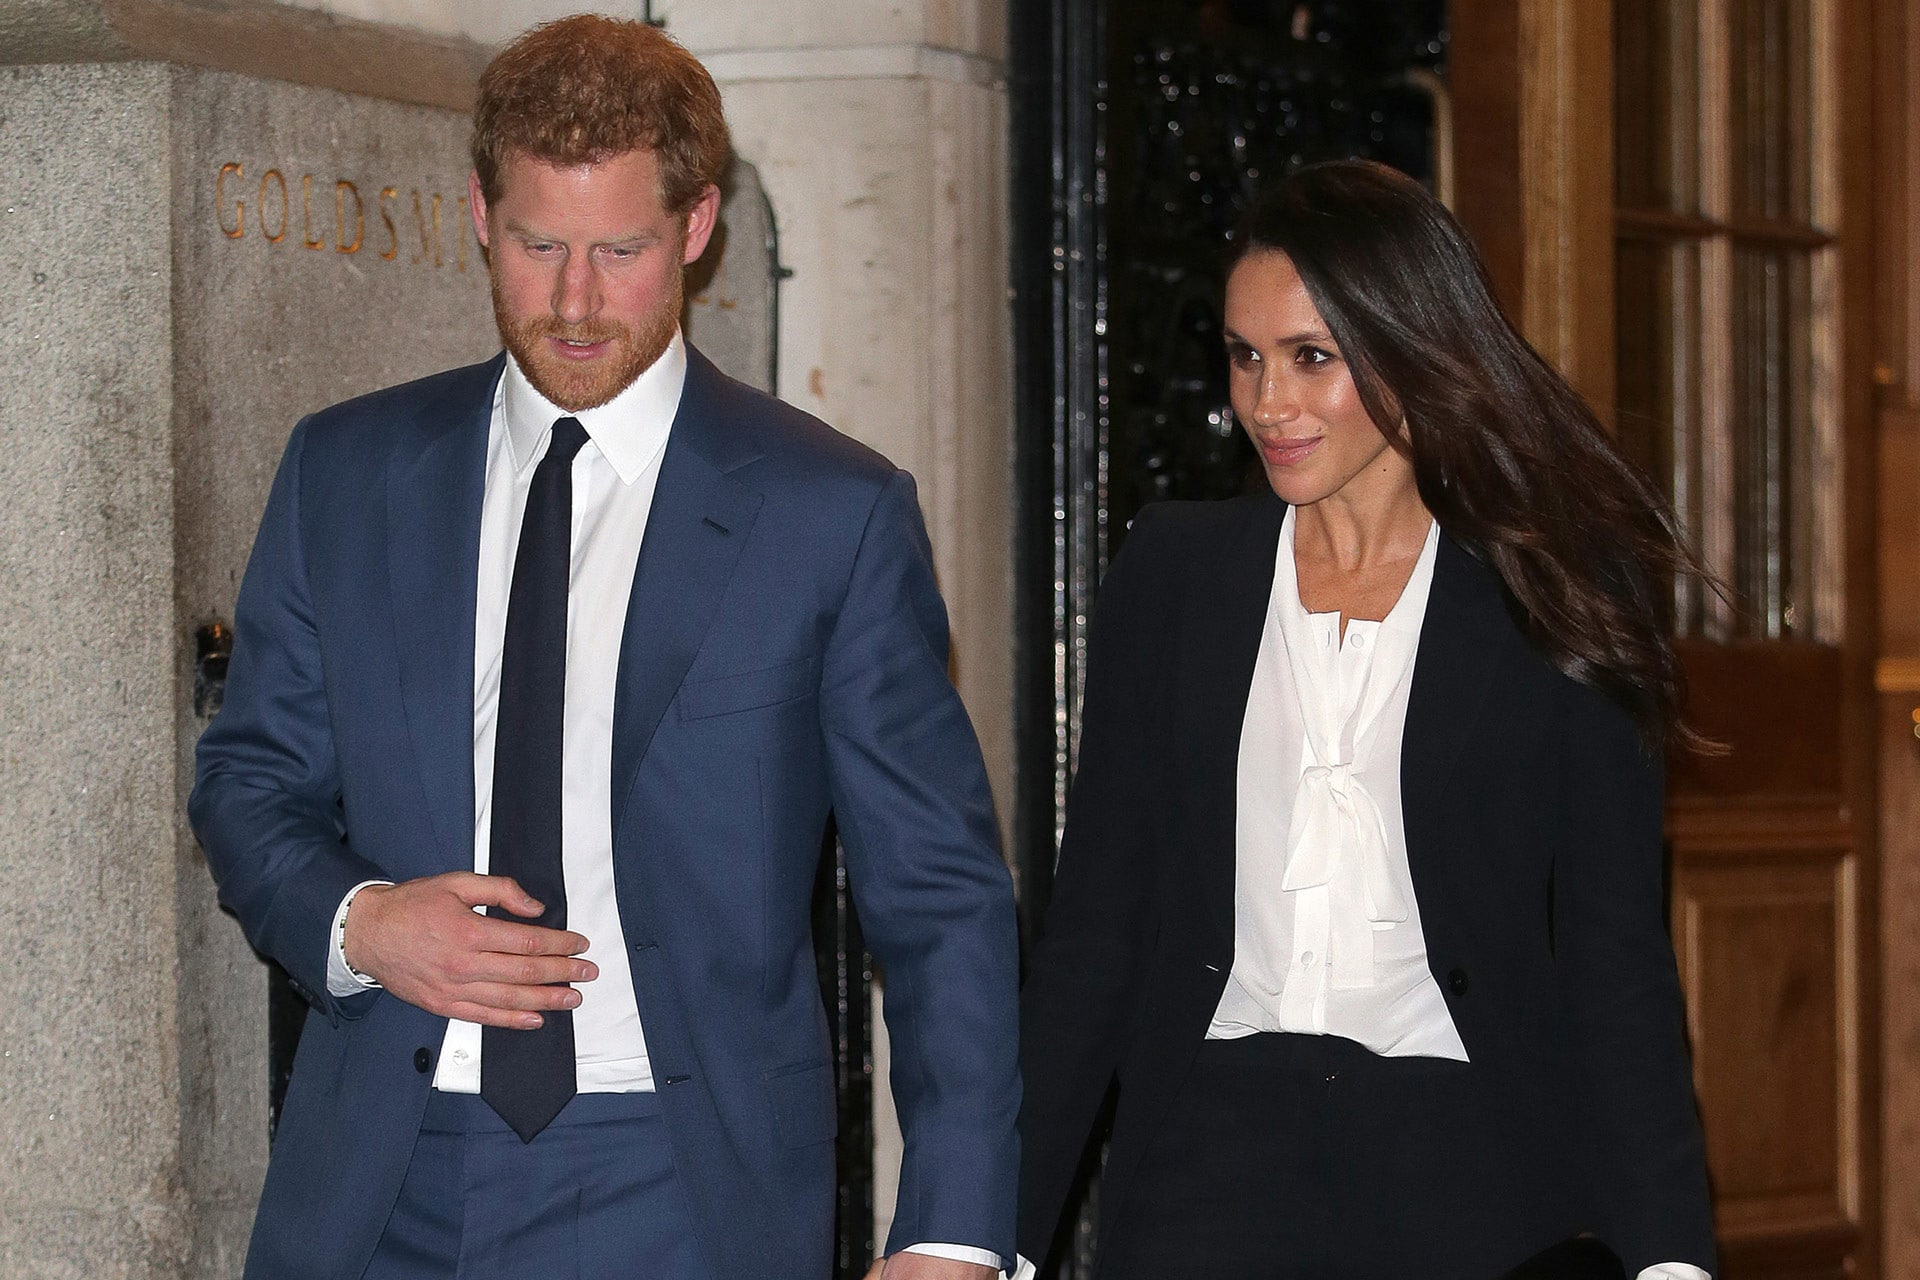 Meghan Markle's former hair and make-up artist predicts her wedding day beauty look